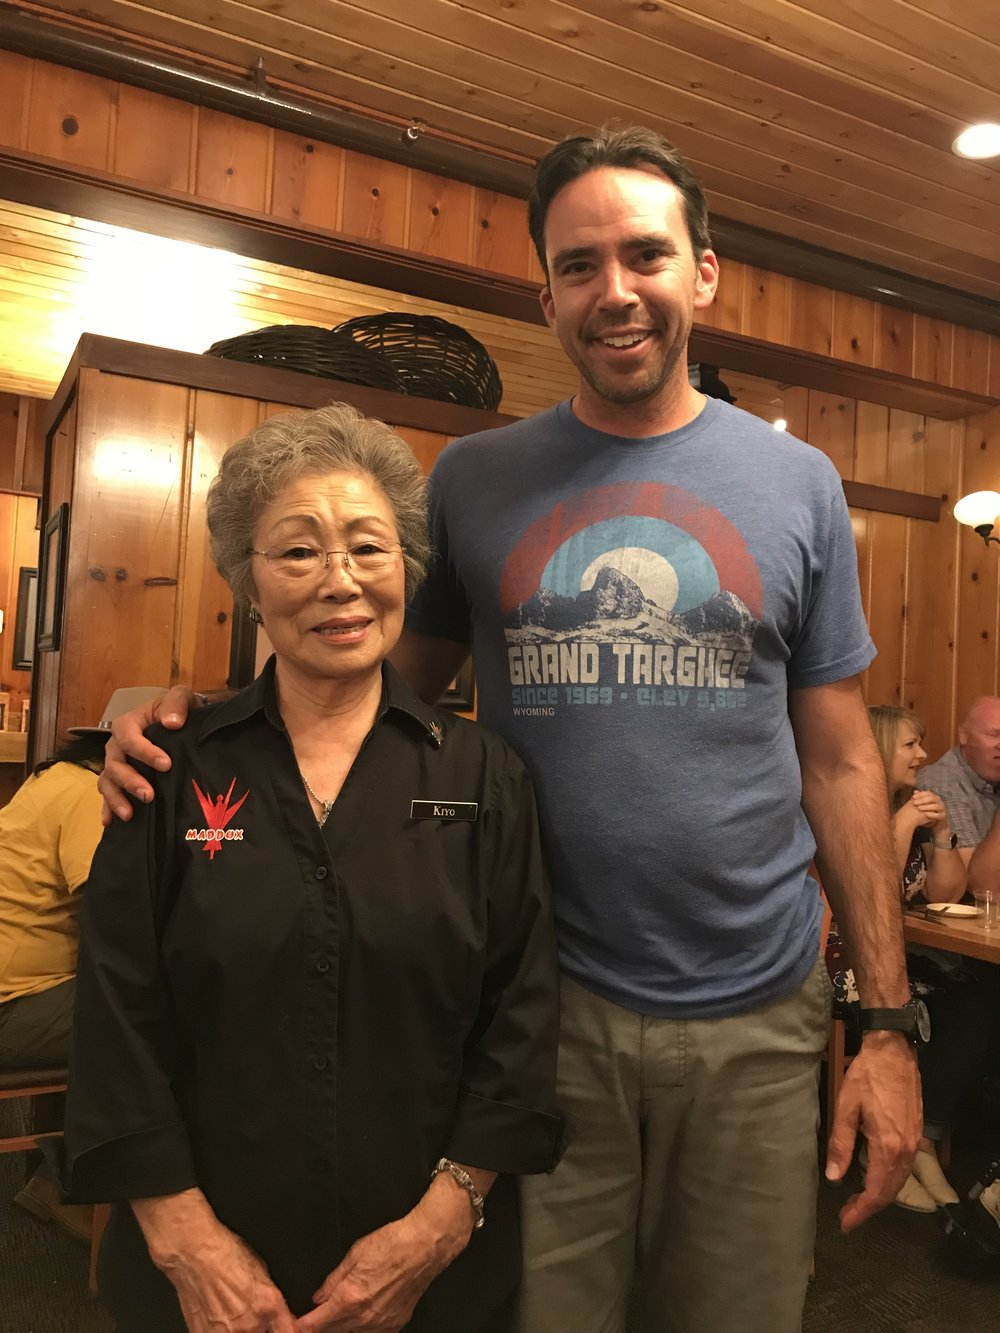 Kiyo - Getting After it, at 85 Years old - Maddox Steakhouse